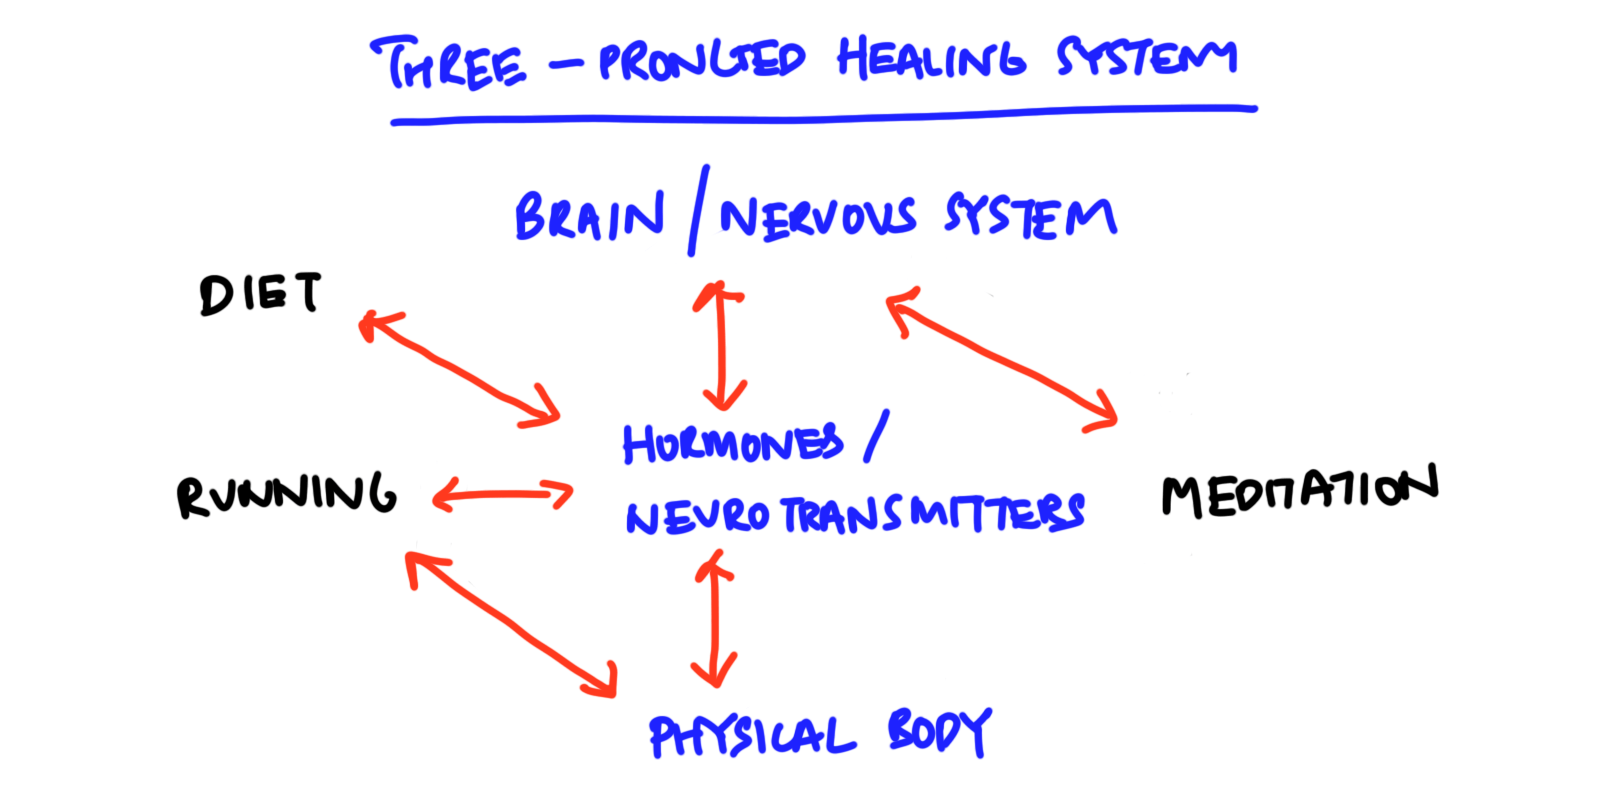 three-pronged healing system